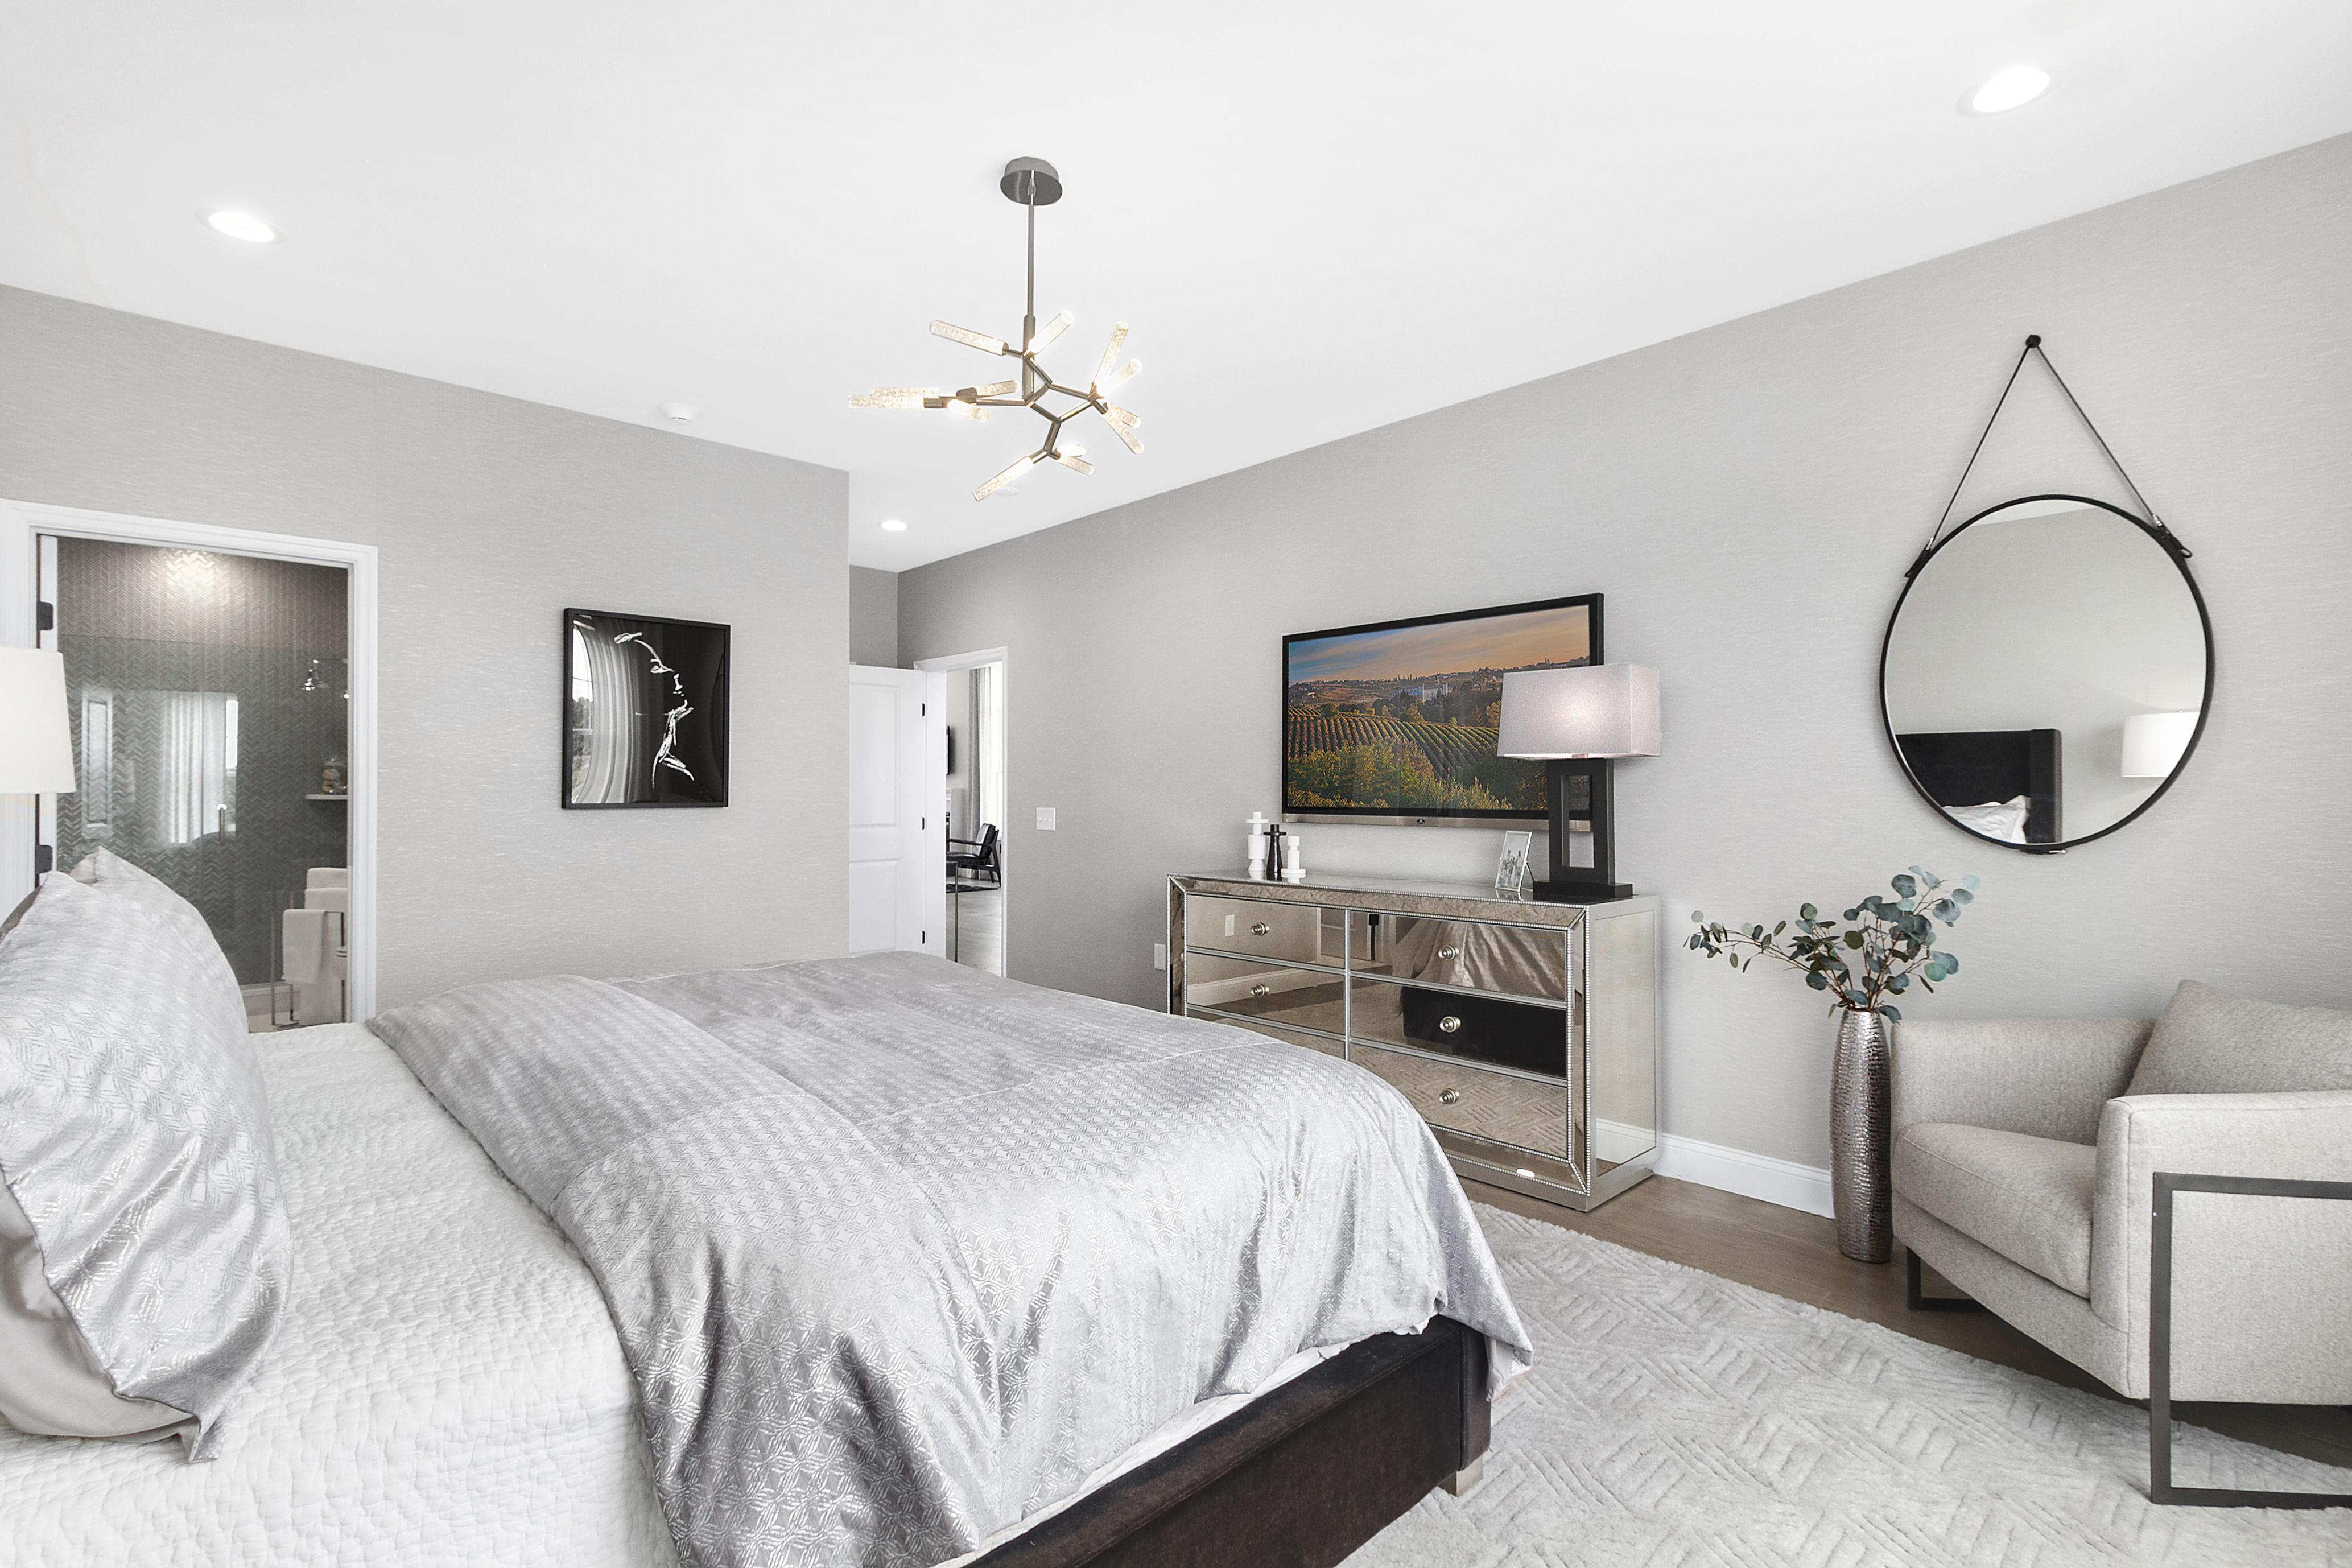 Bedroom featured in The Eastbourne By Beechwood Homes in Nassau-Suffolk, NY